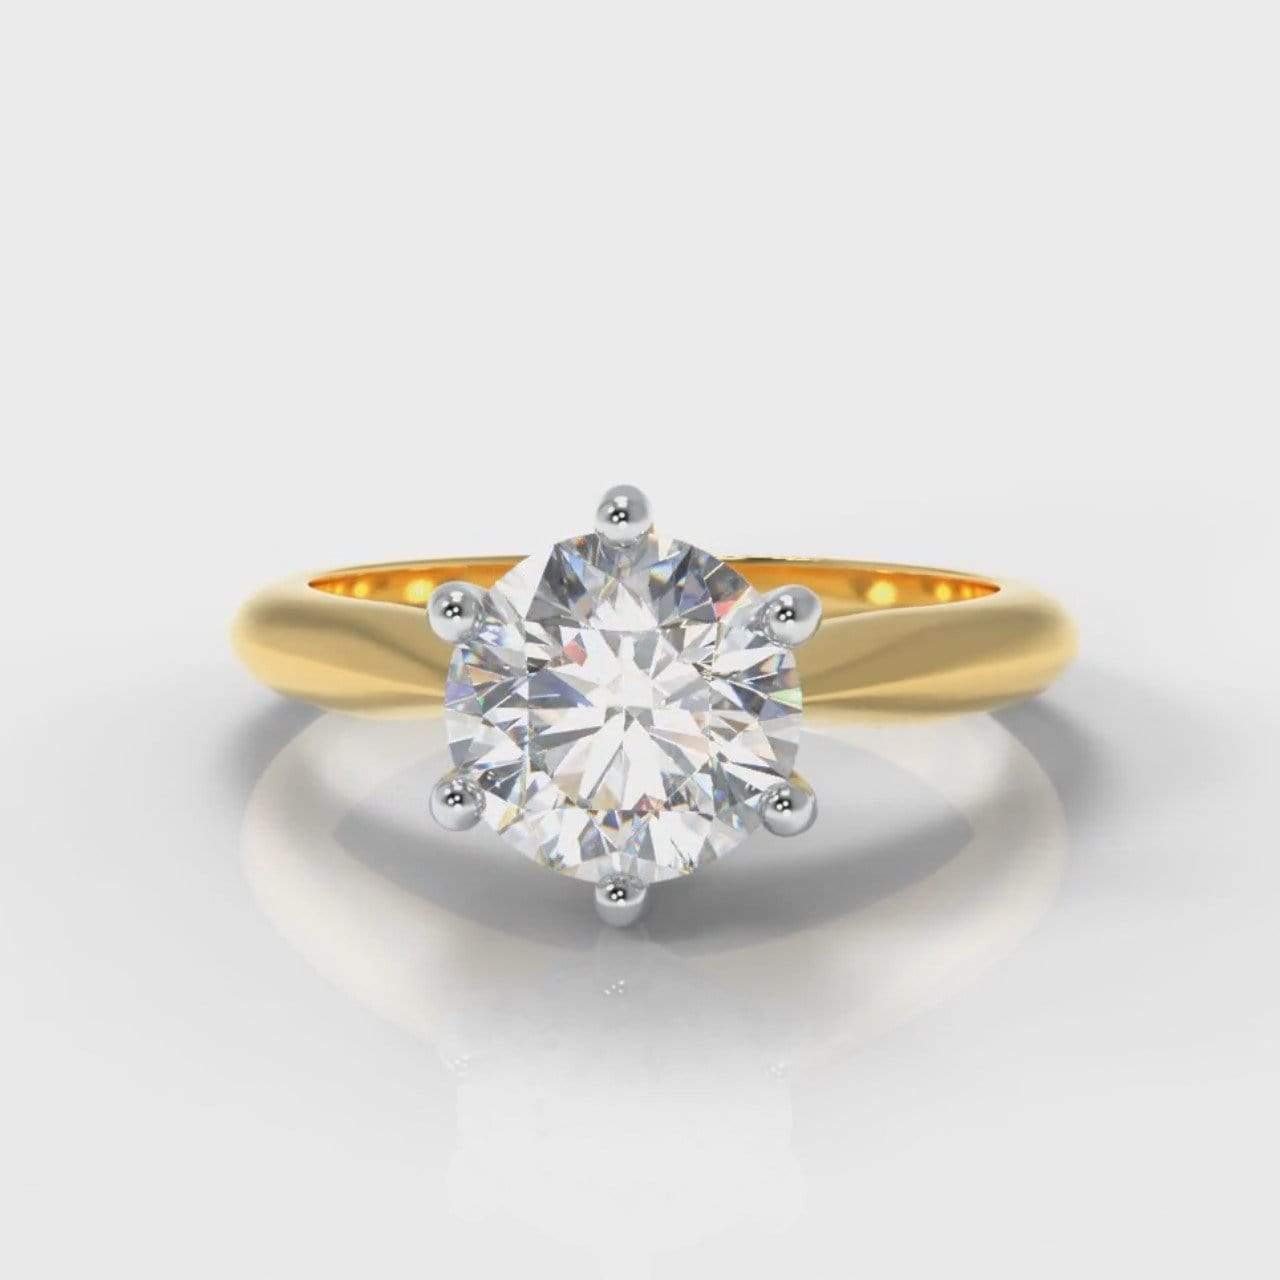 Six Claw Classic Solitaire Round Brilliant Cut Lab Diamond Engagement Ring - Yellow Gold-Ring Setting-Pure Carats-Pure Carats